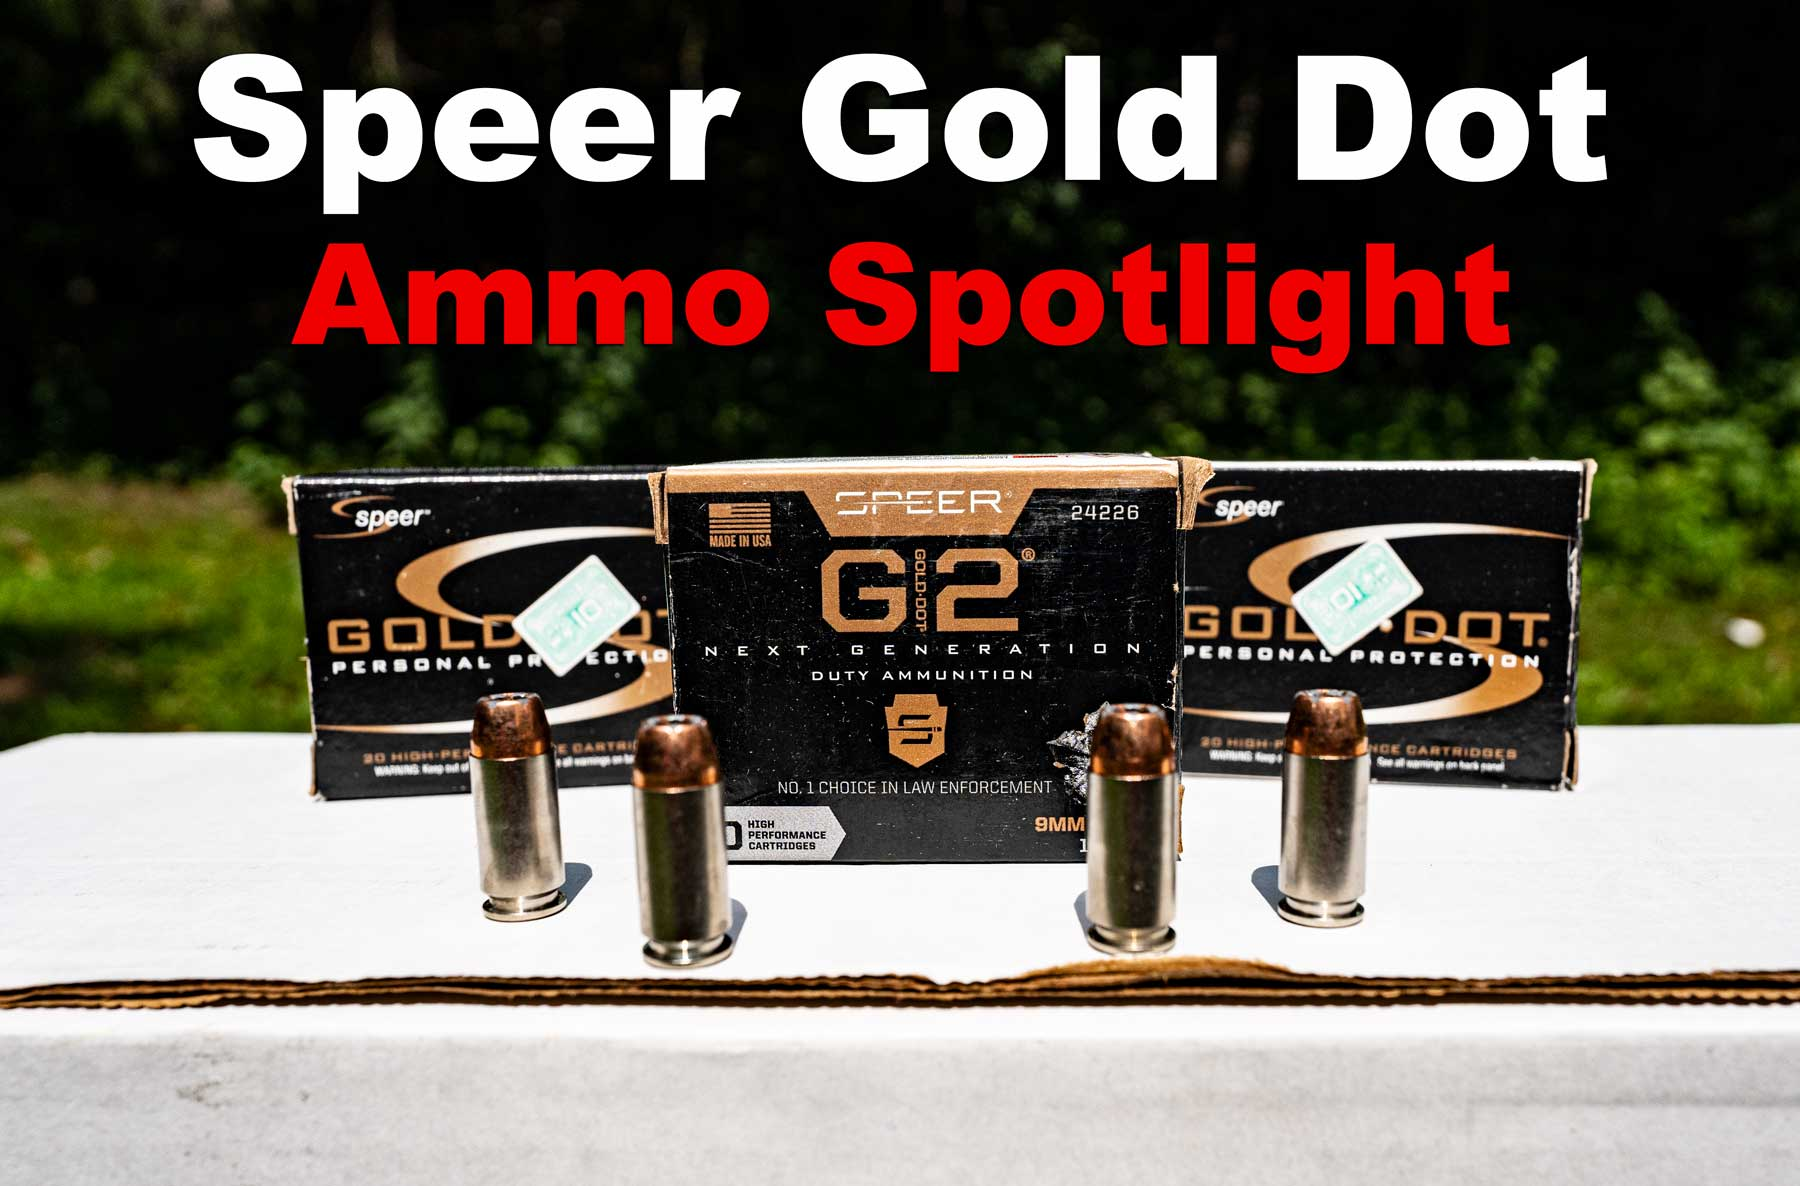 Speer Gold Dot ammo displayed at the range